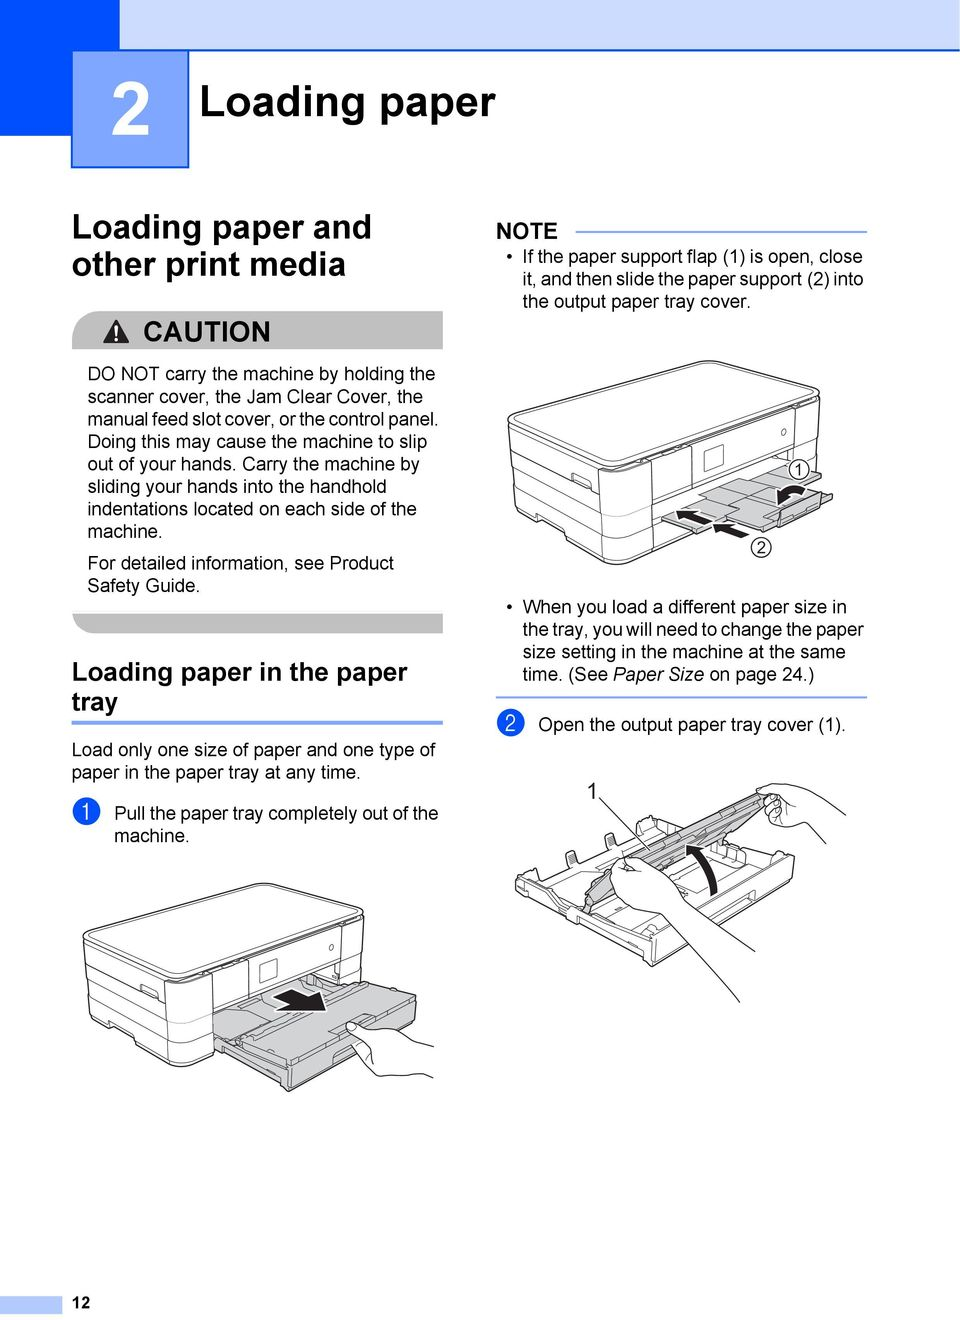 For detailed information, see Product Safety Guide. Loading paper in the paper tray 2 Load only one size of paper and one type of paper in the paper tray at any time.